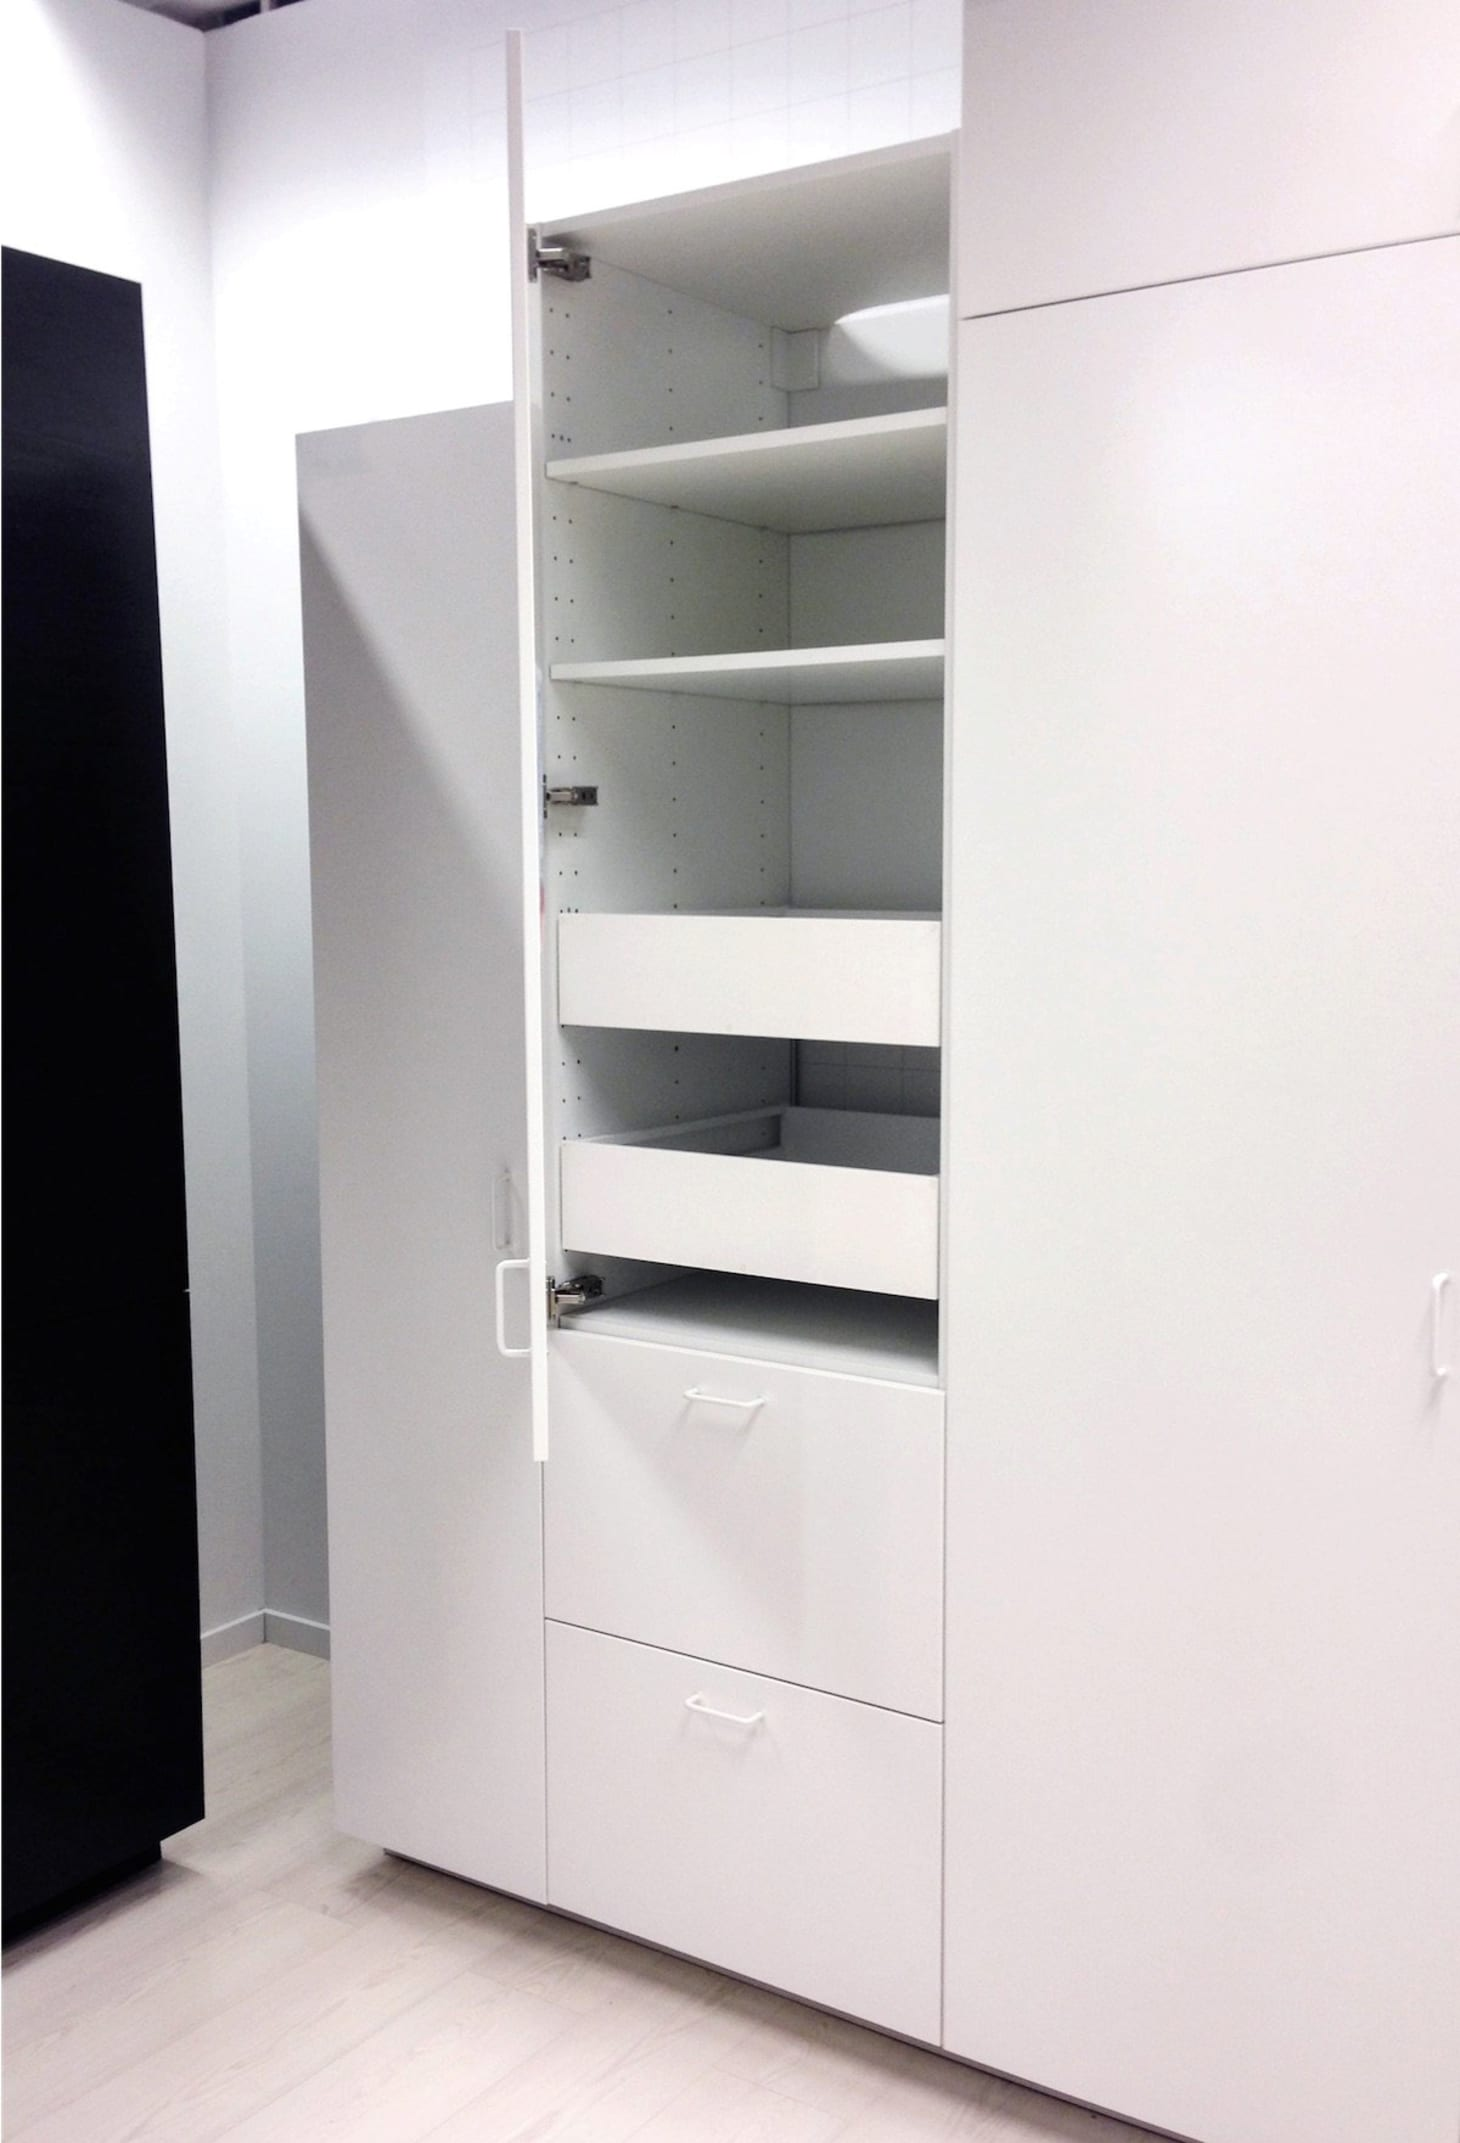 Ikea S Akurum Vs Sektion Cabinets What S The Difference